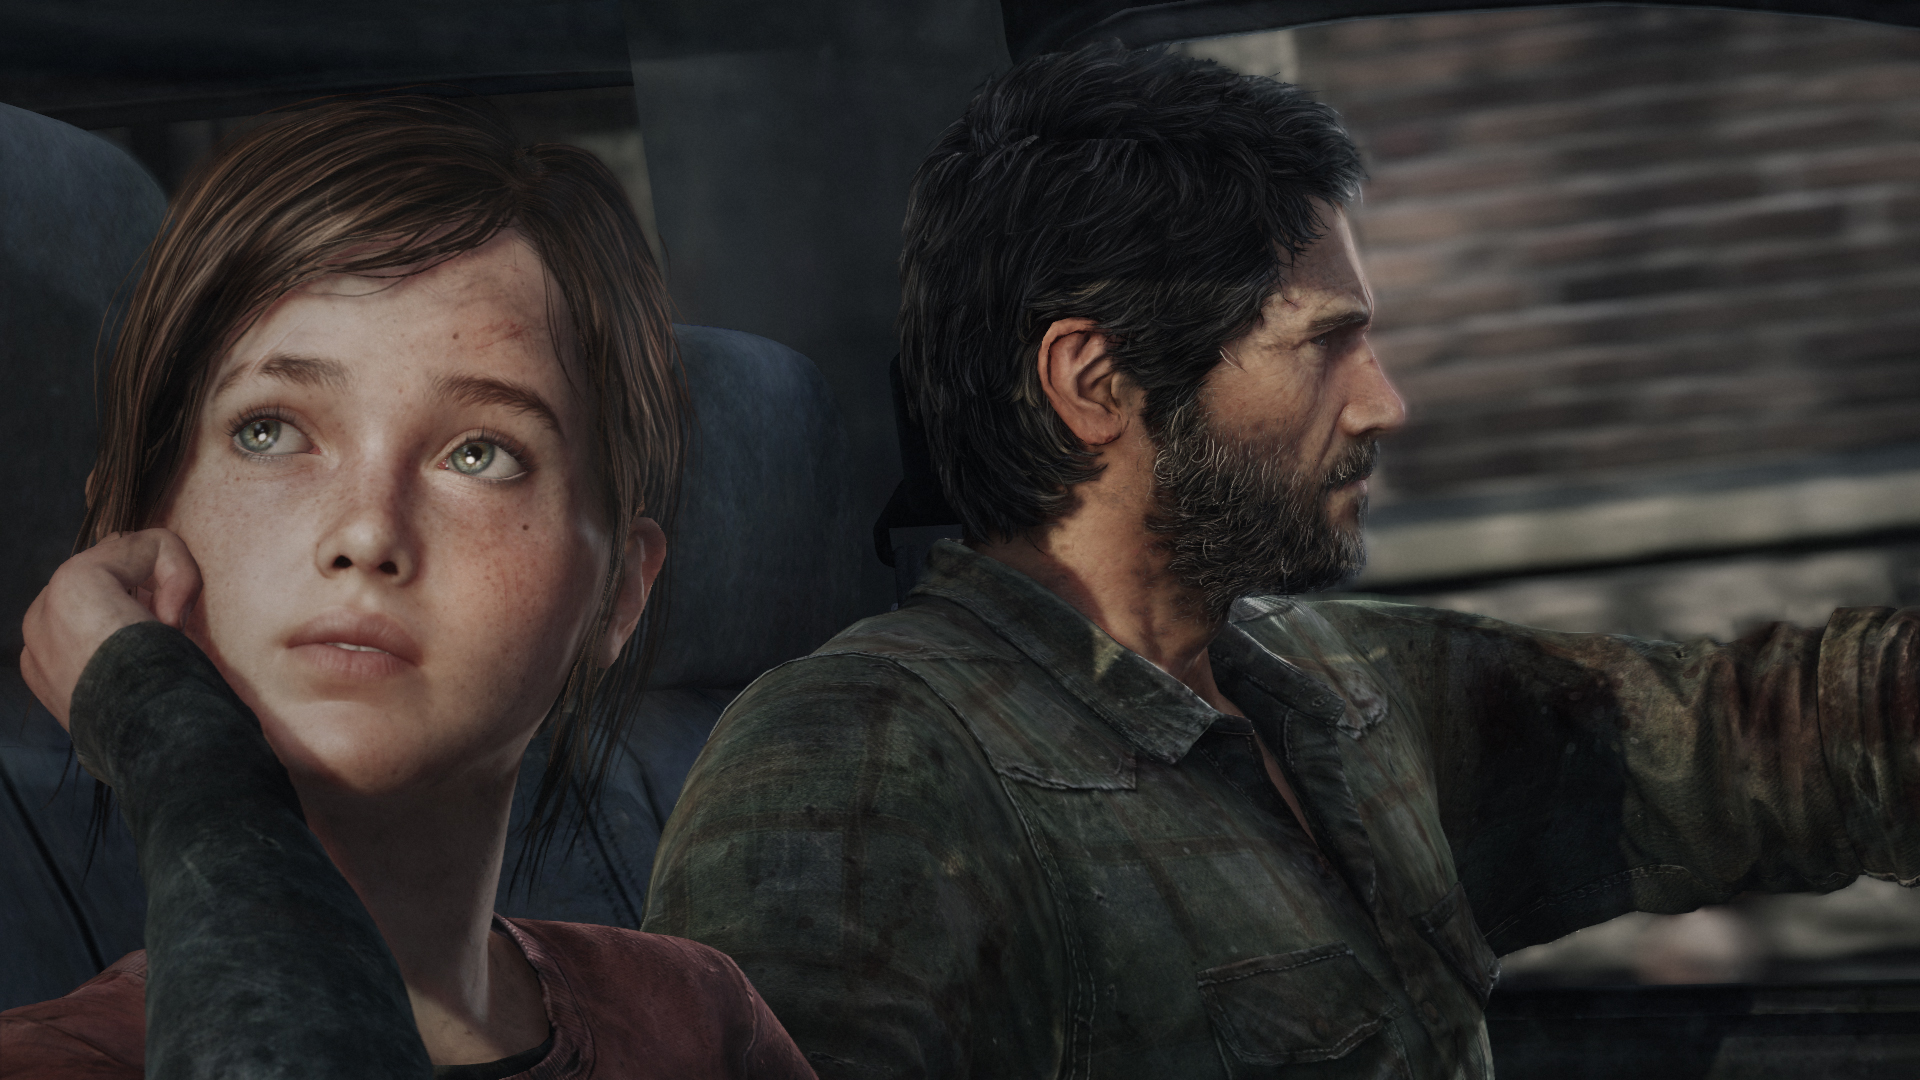 3050132 4619974363 TheLa Naughty Dog Could Be Hiring For The Last Of Us 2